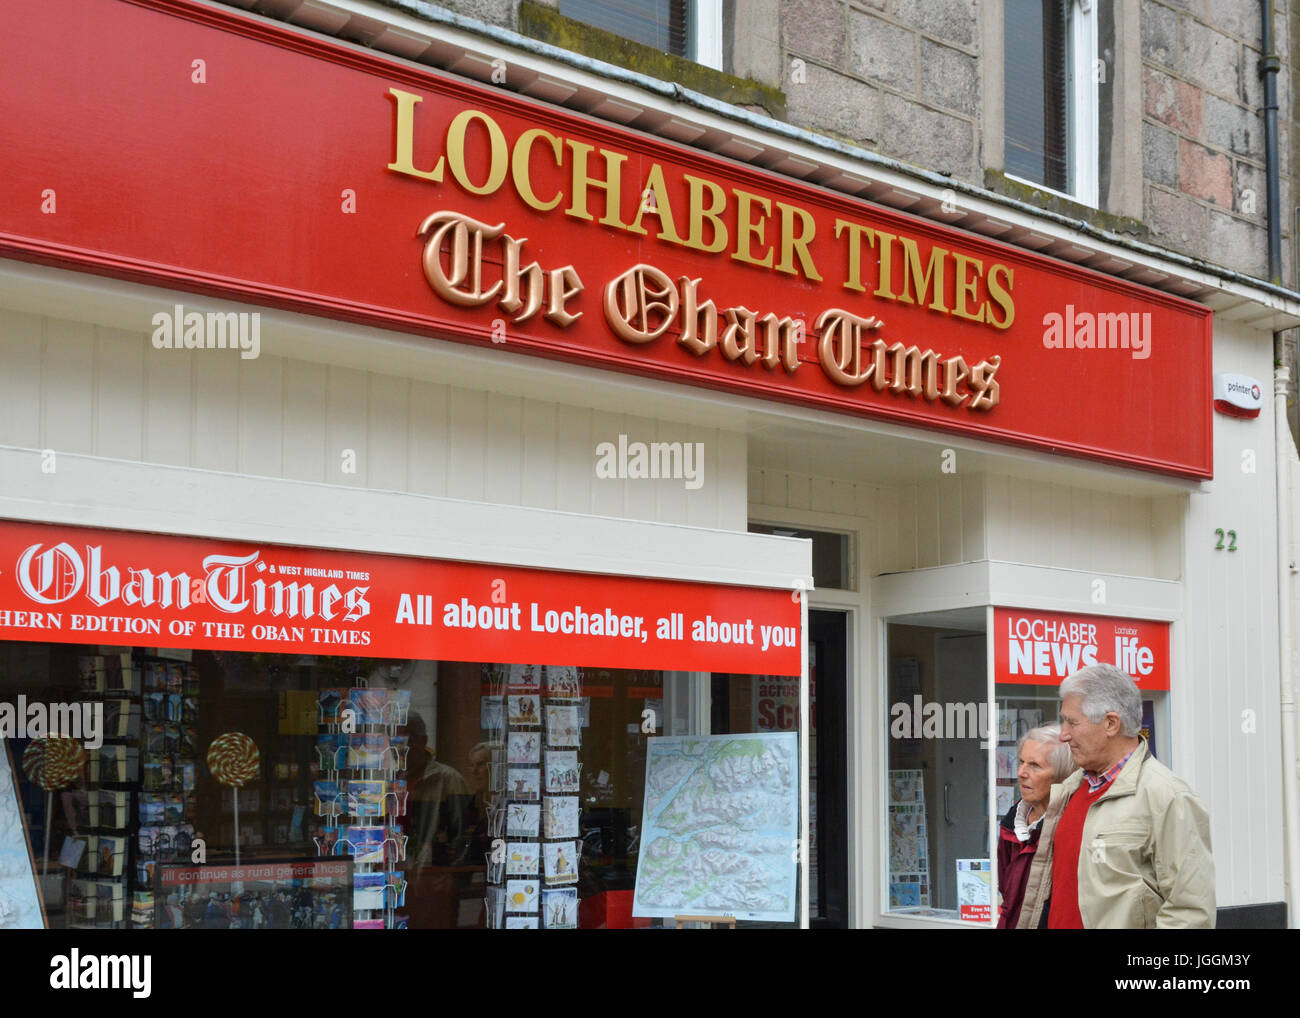 L'Oban et Lochaber fois fois journaux locaux boutique, Fort William, Scotland, UK Photo Stock